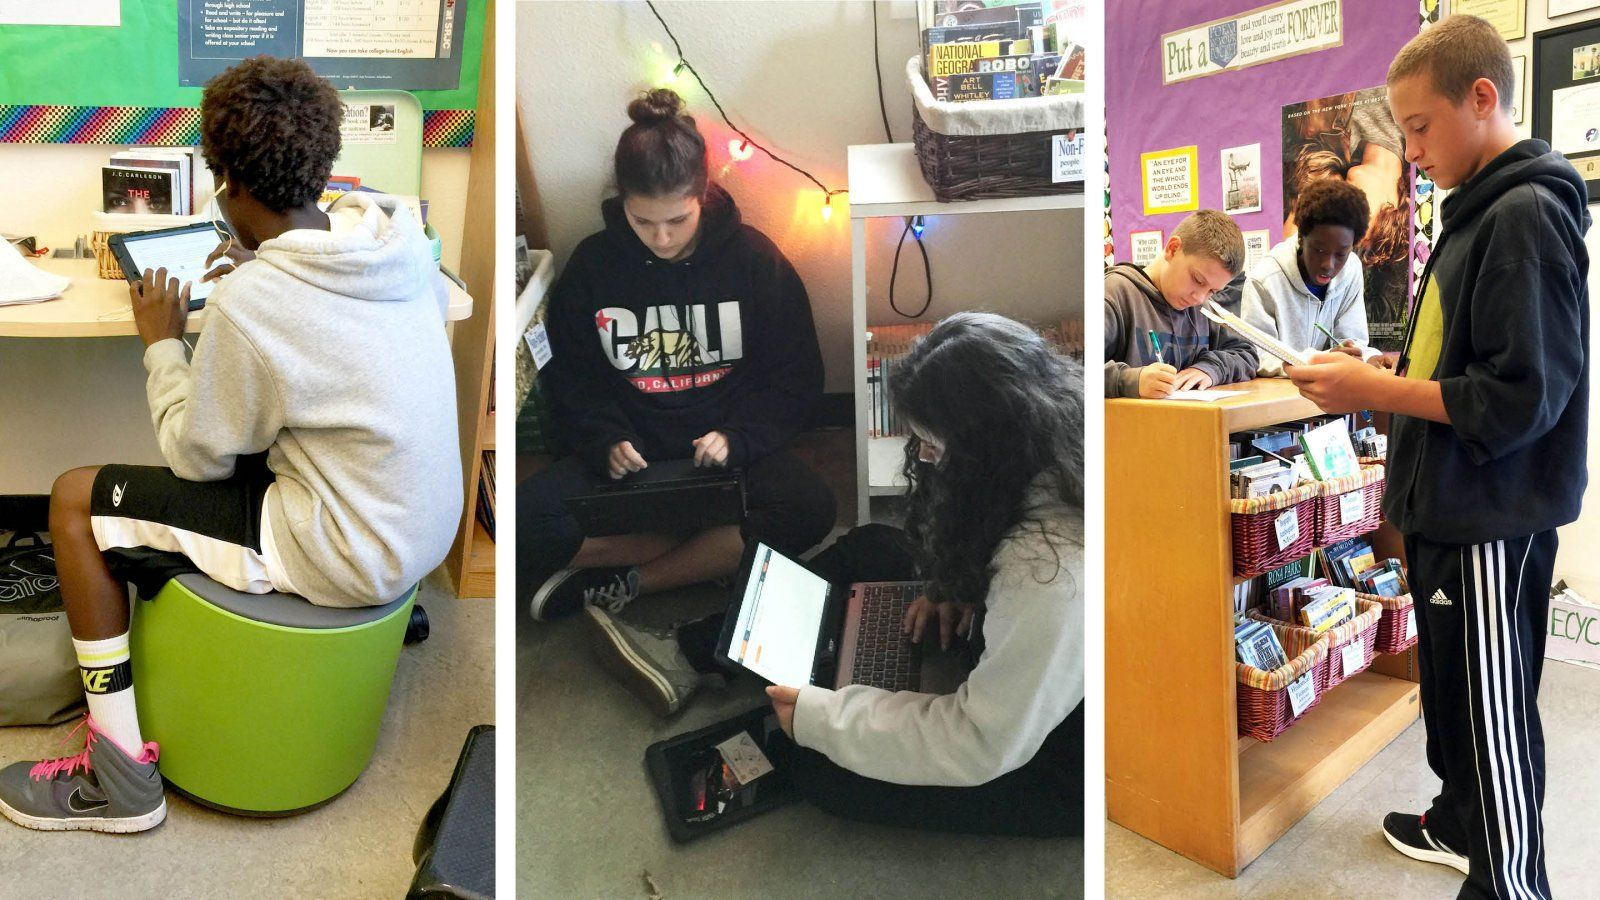 Classroom Design Essay : Photo essay a flexible seating how to middle school teachers